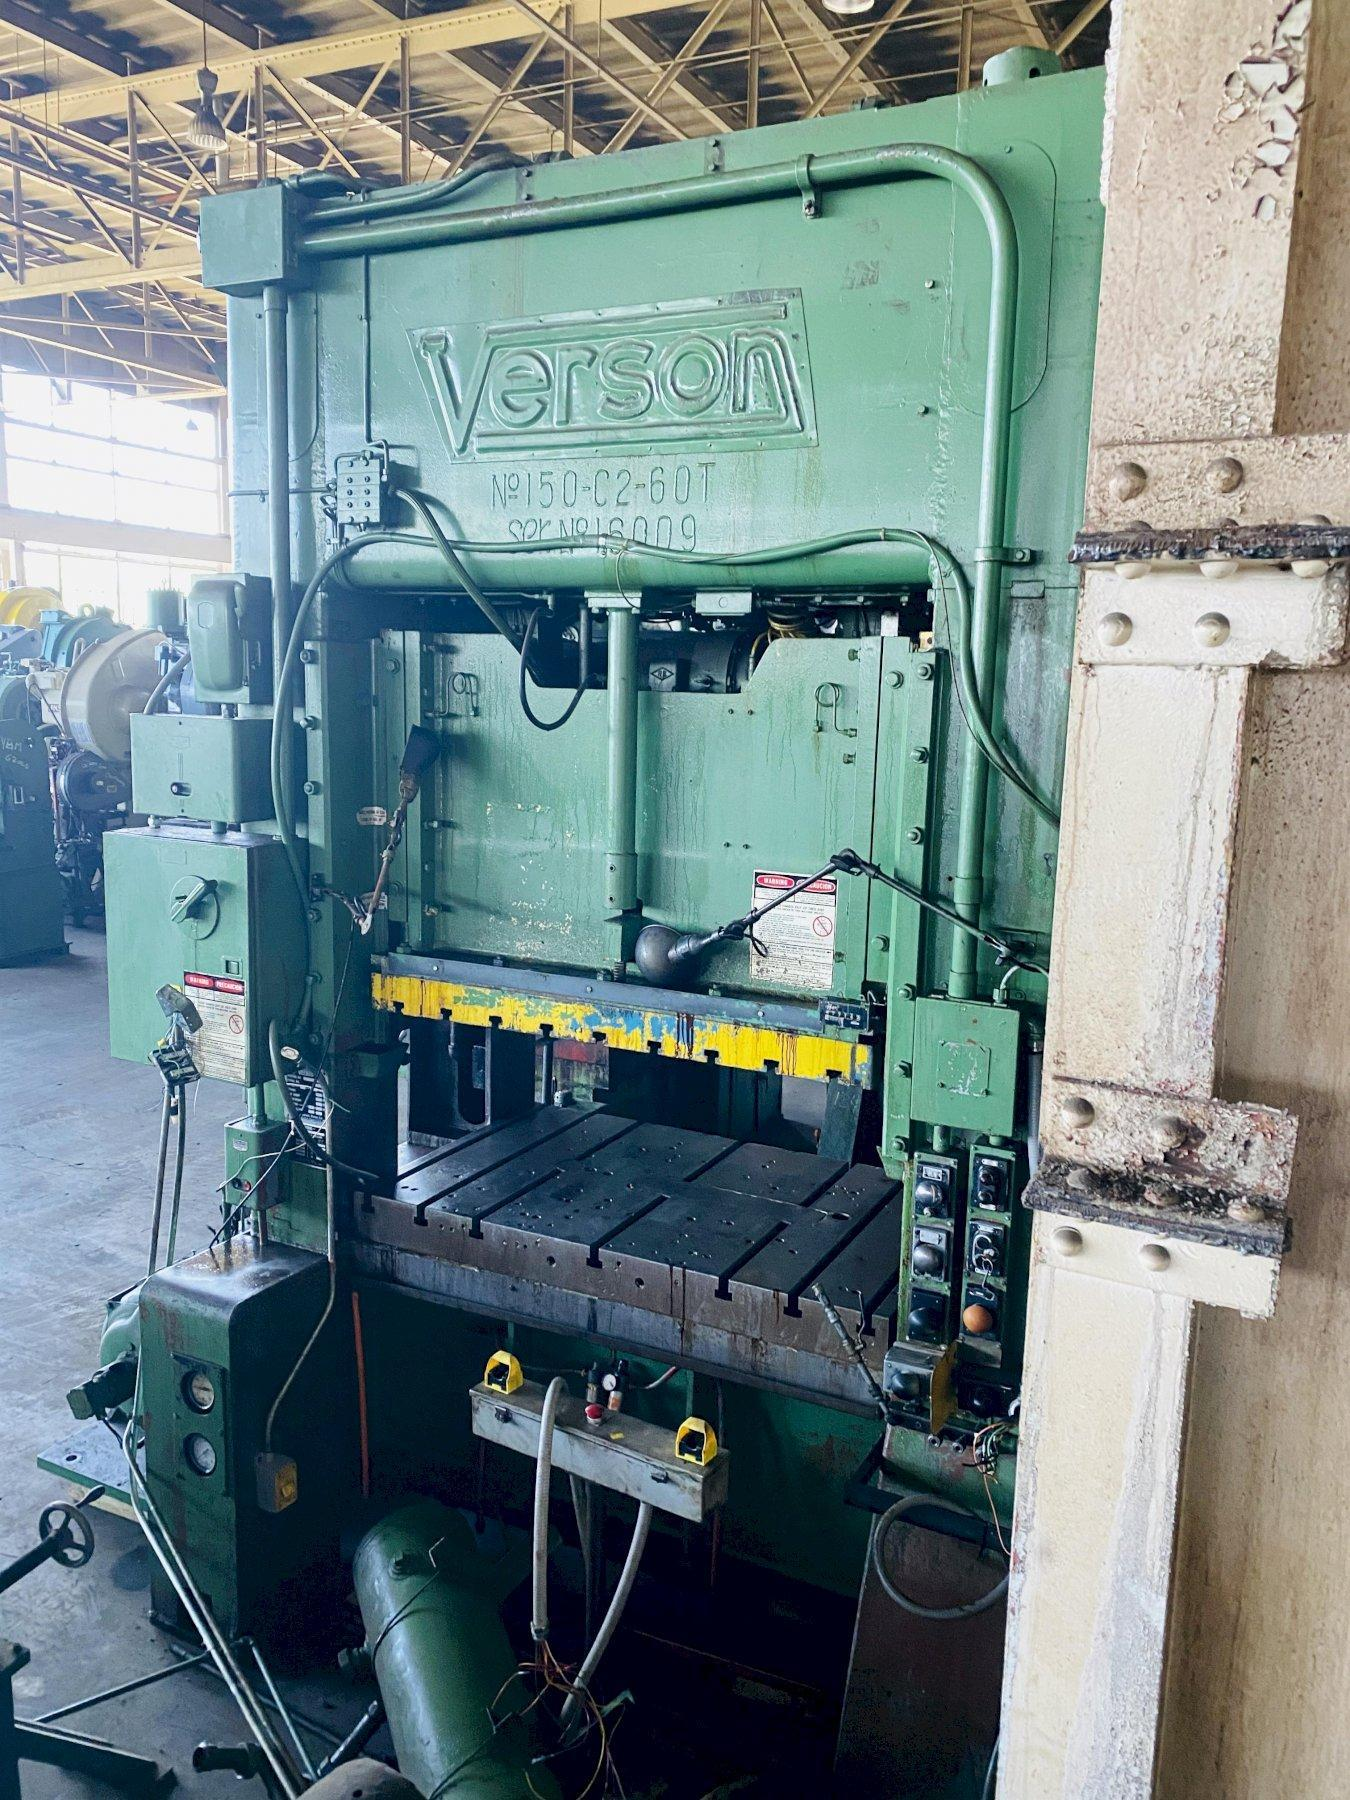 150 Ton Verson 150-C2-60T Straight Side Press